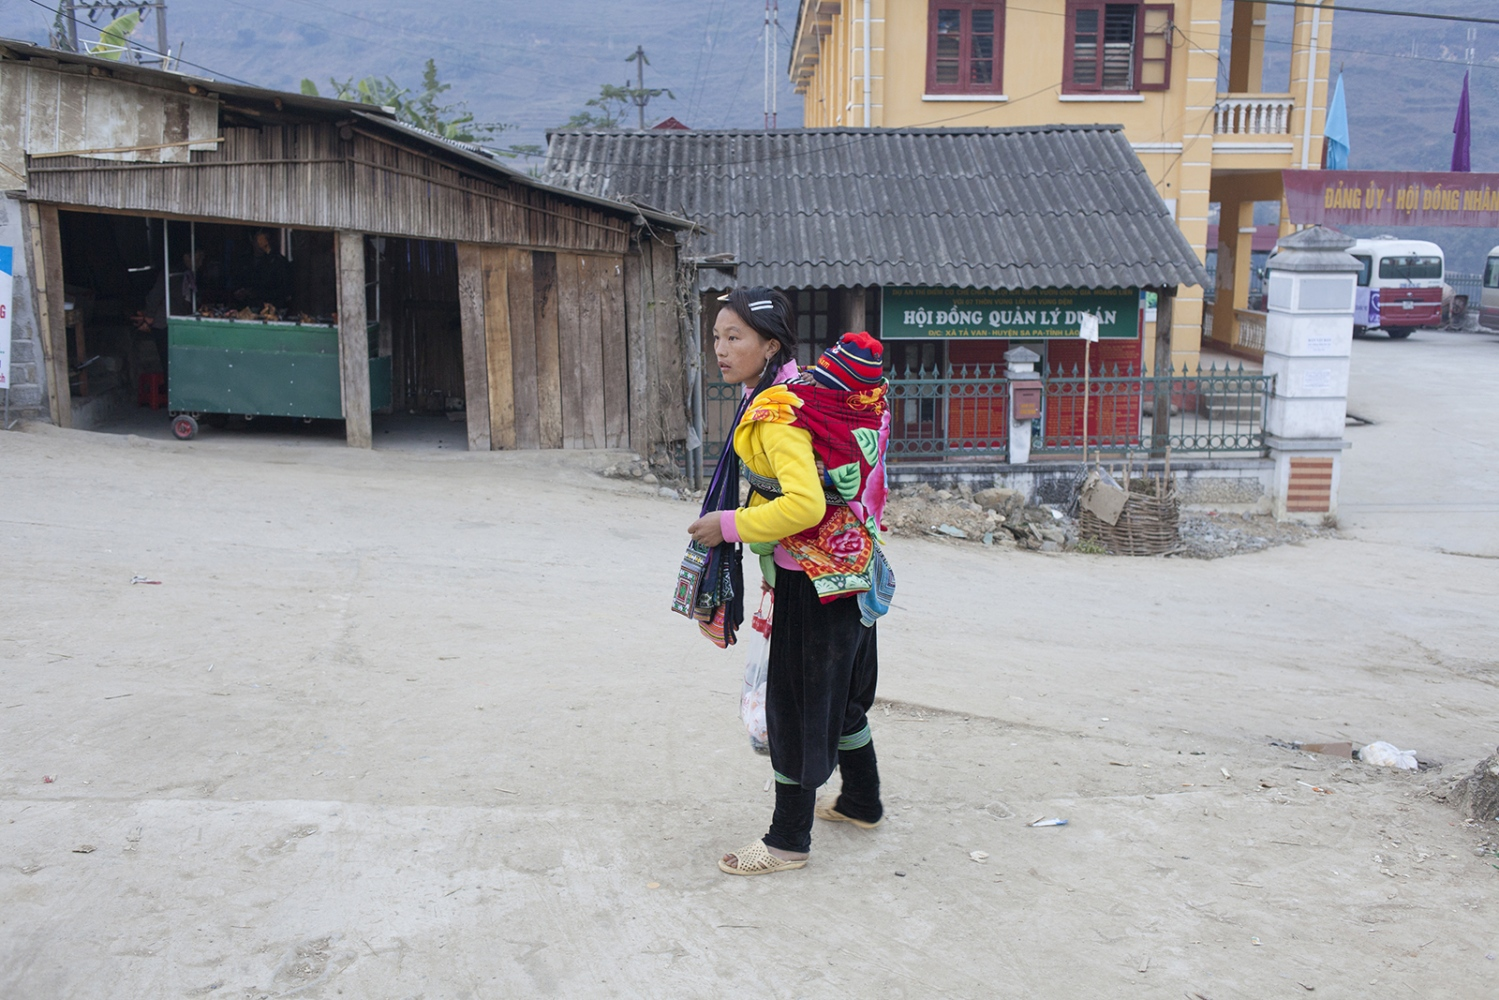 Woman with child in a harness on her back.